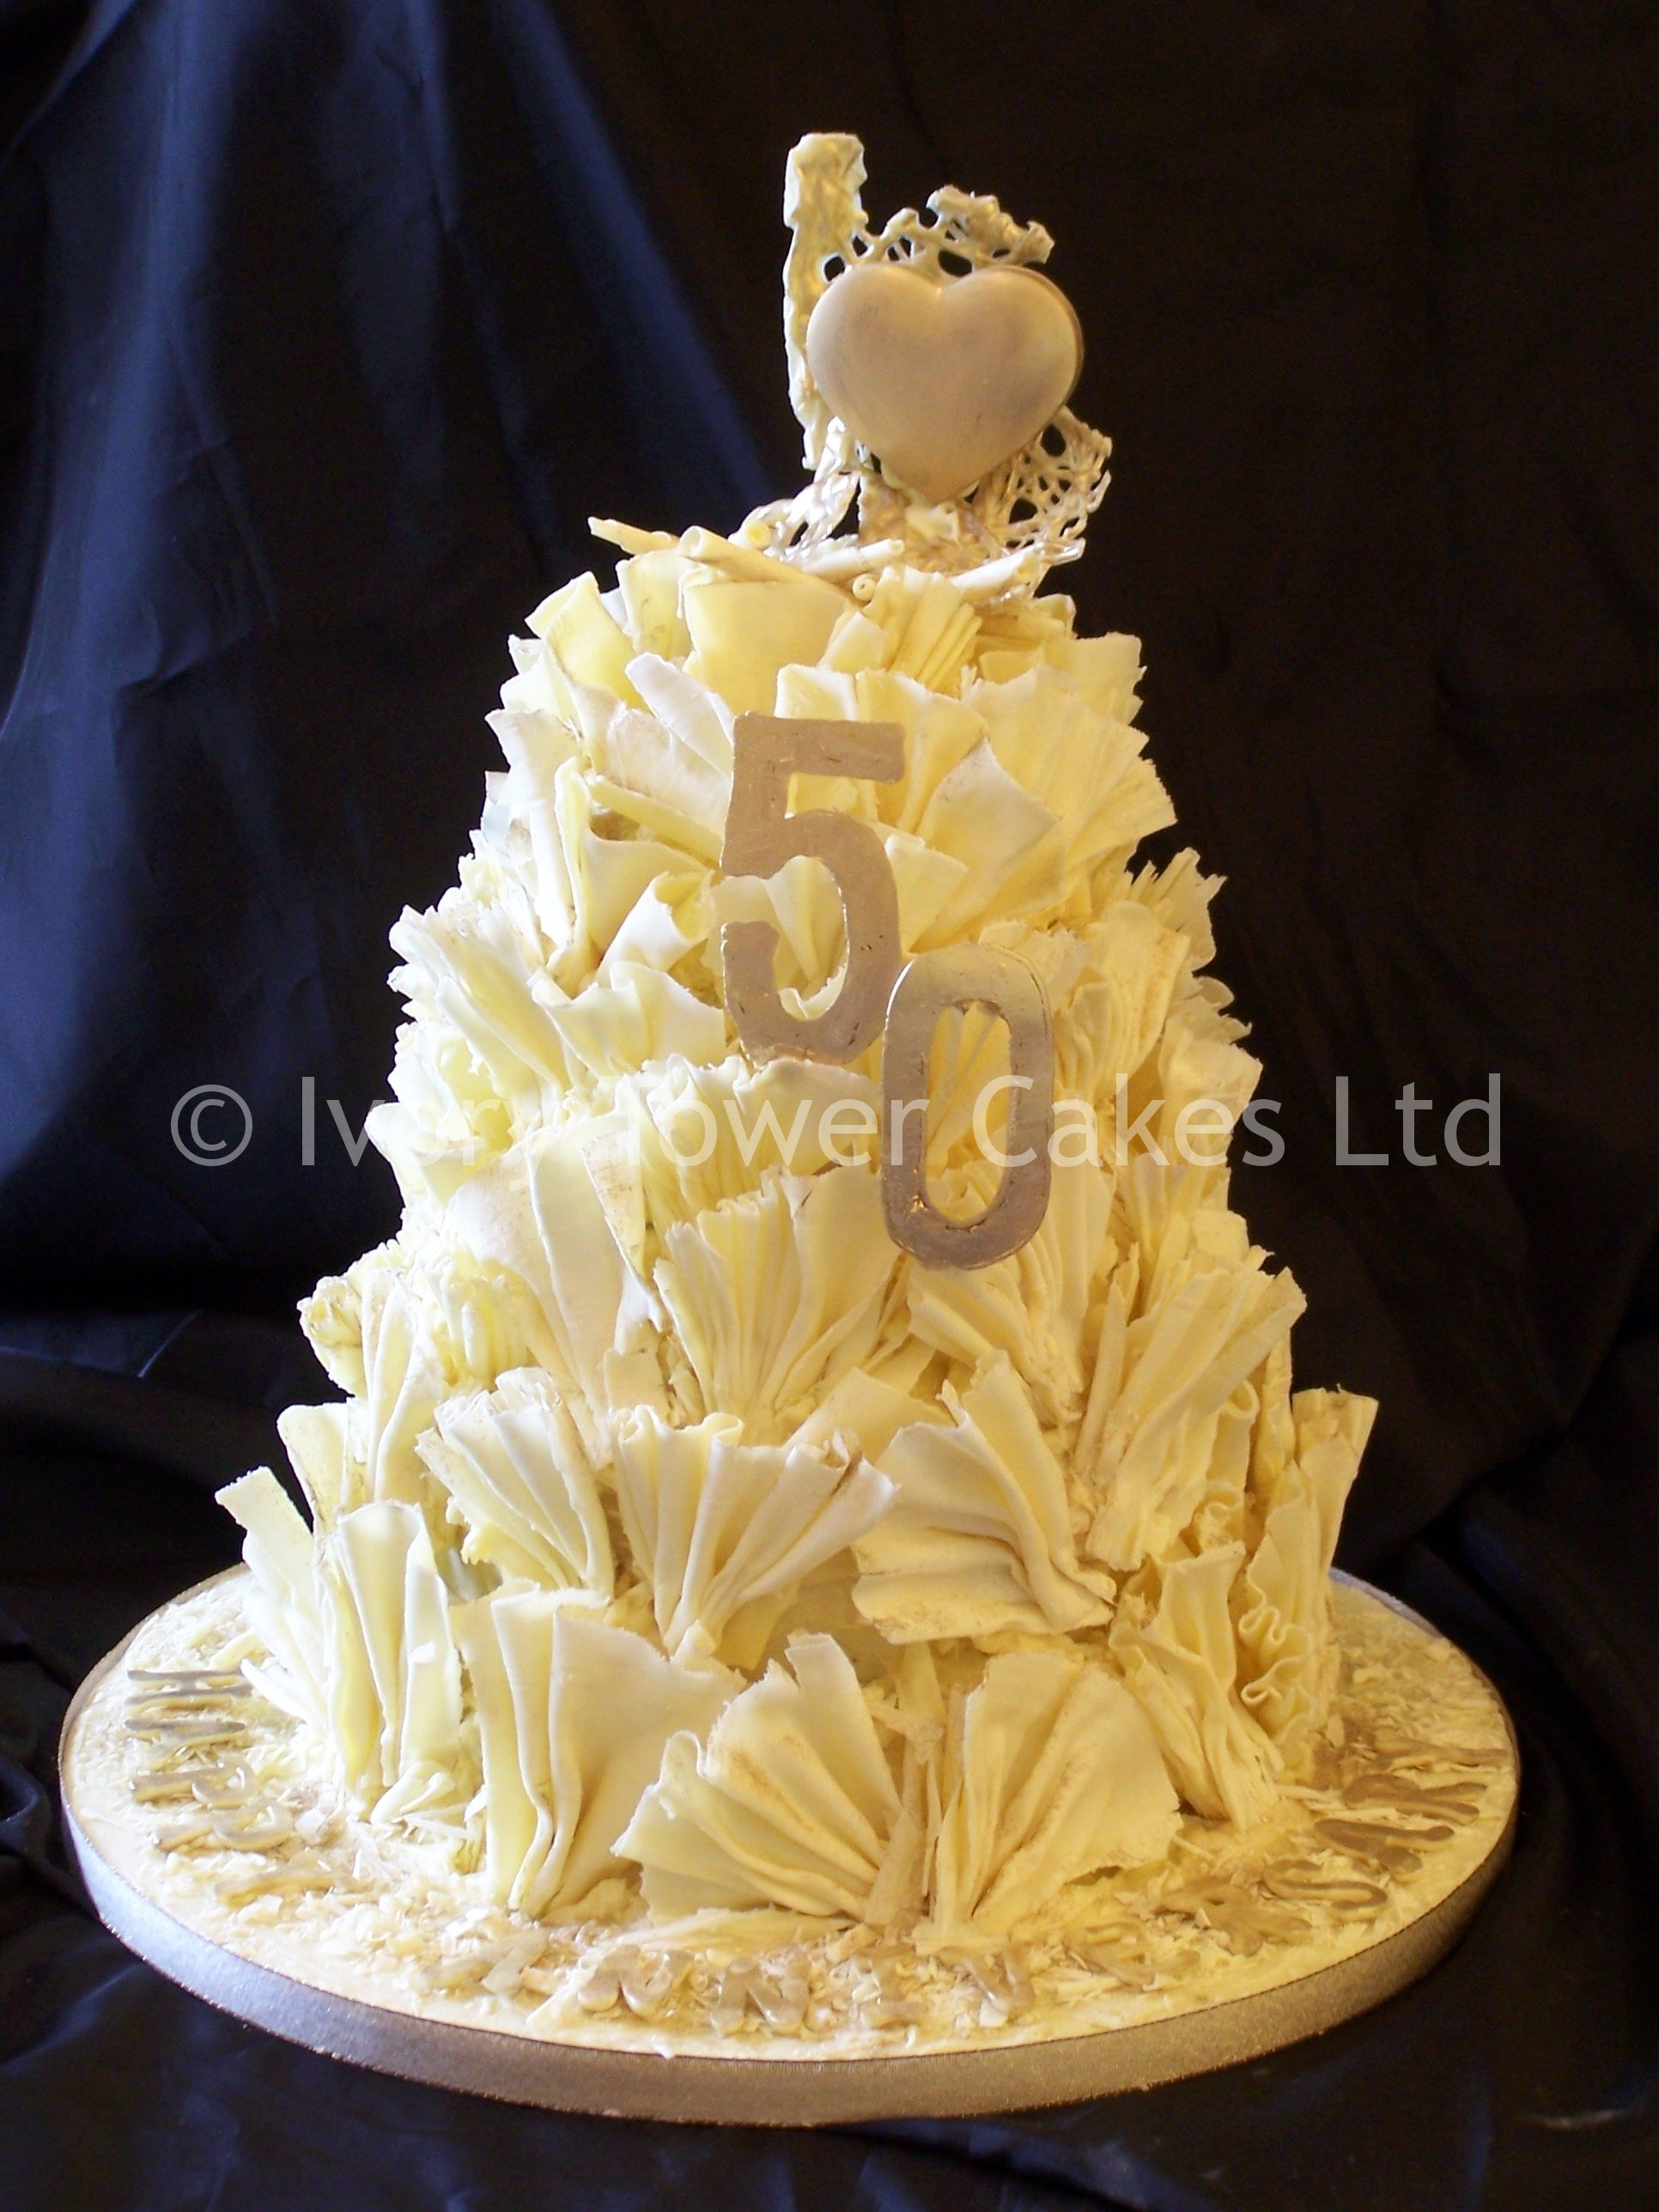 3 Tier Belgian Chocolate 50th Wedding Anniversary Cake By Ivory